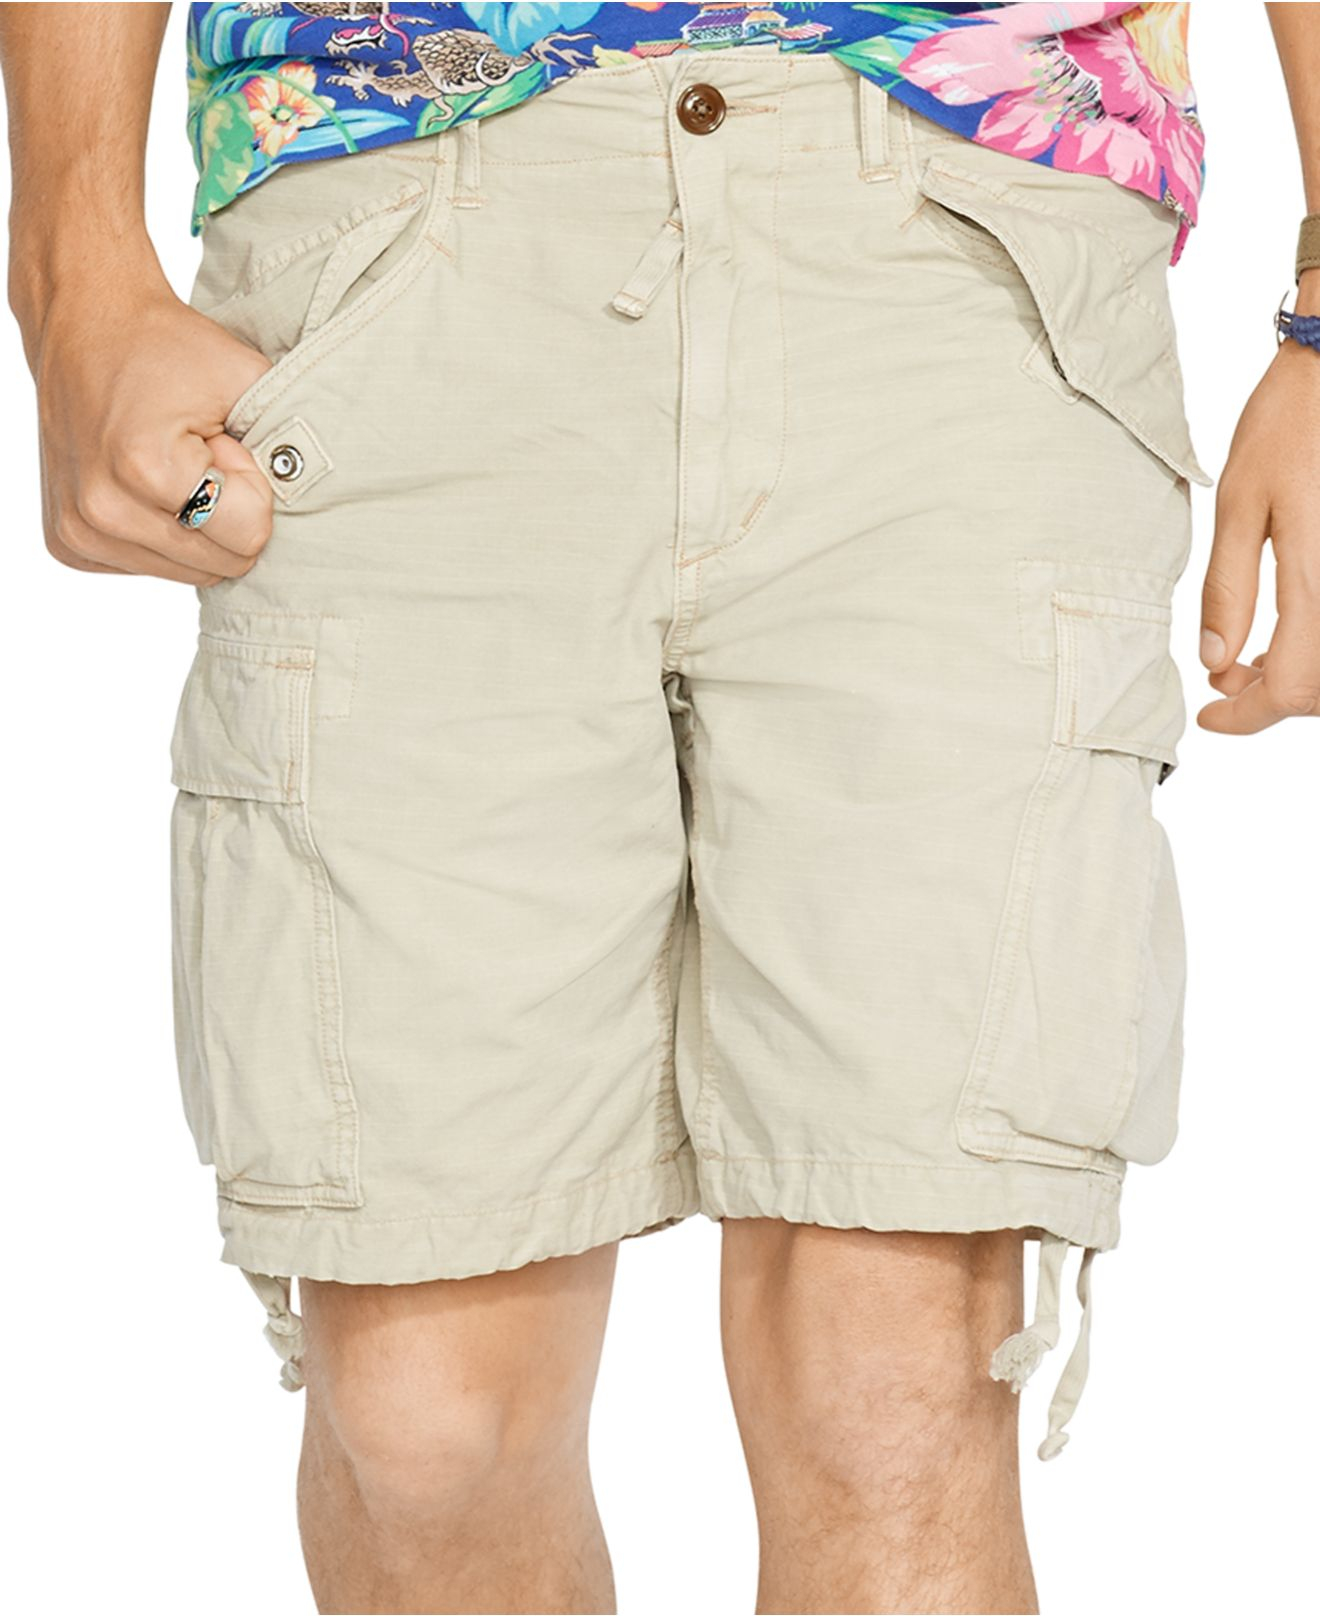 d96b4843ae ... coupon code lyst polo ralph lauren relaxed fit ripstop cargo shorts in  natural 5d359 0c0c5